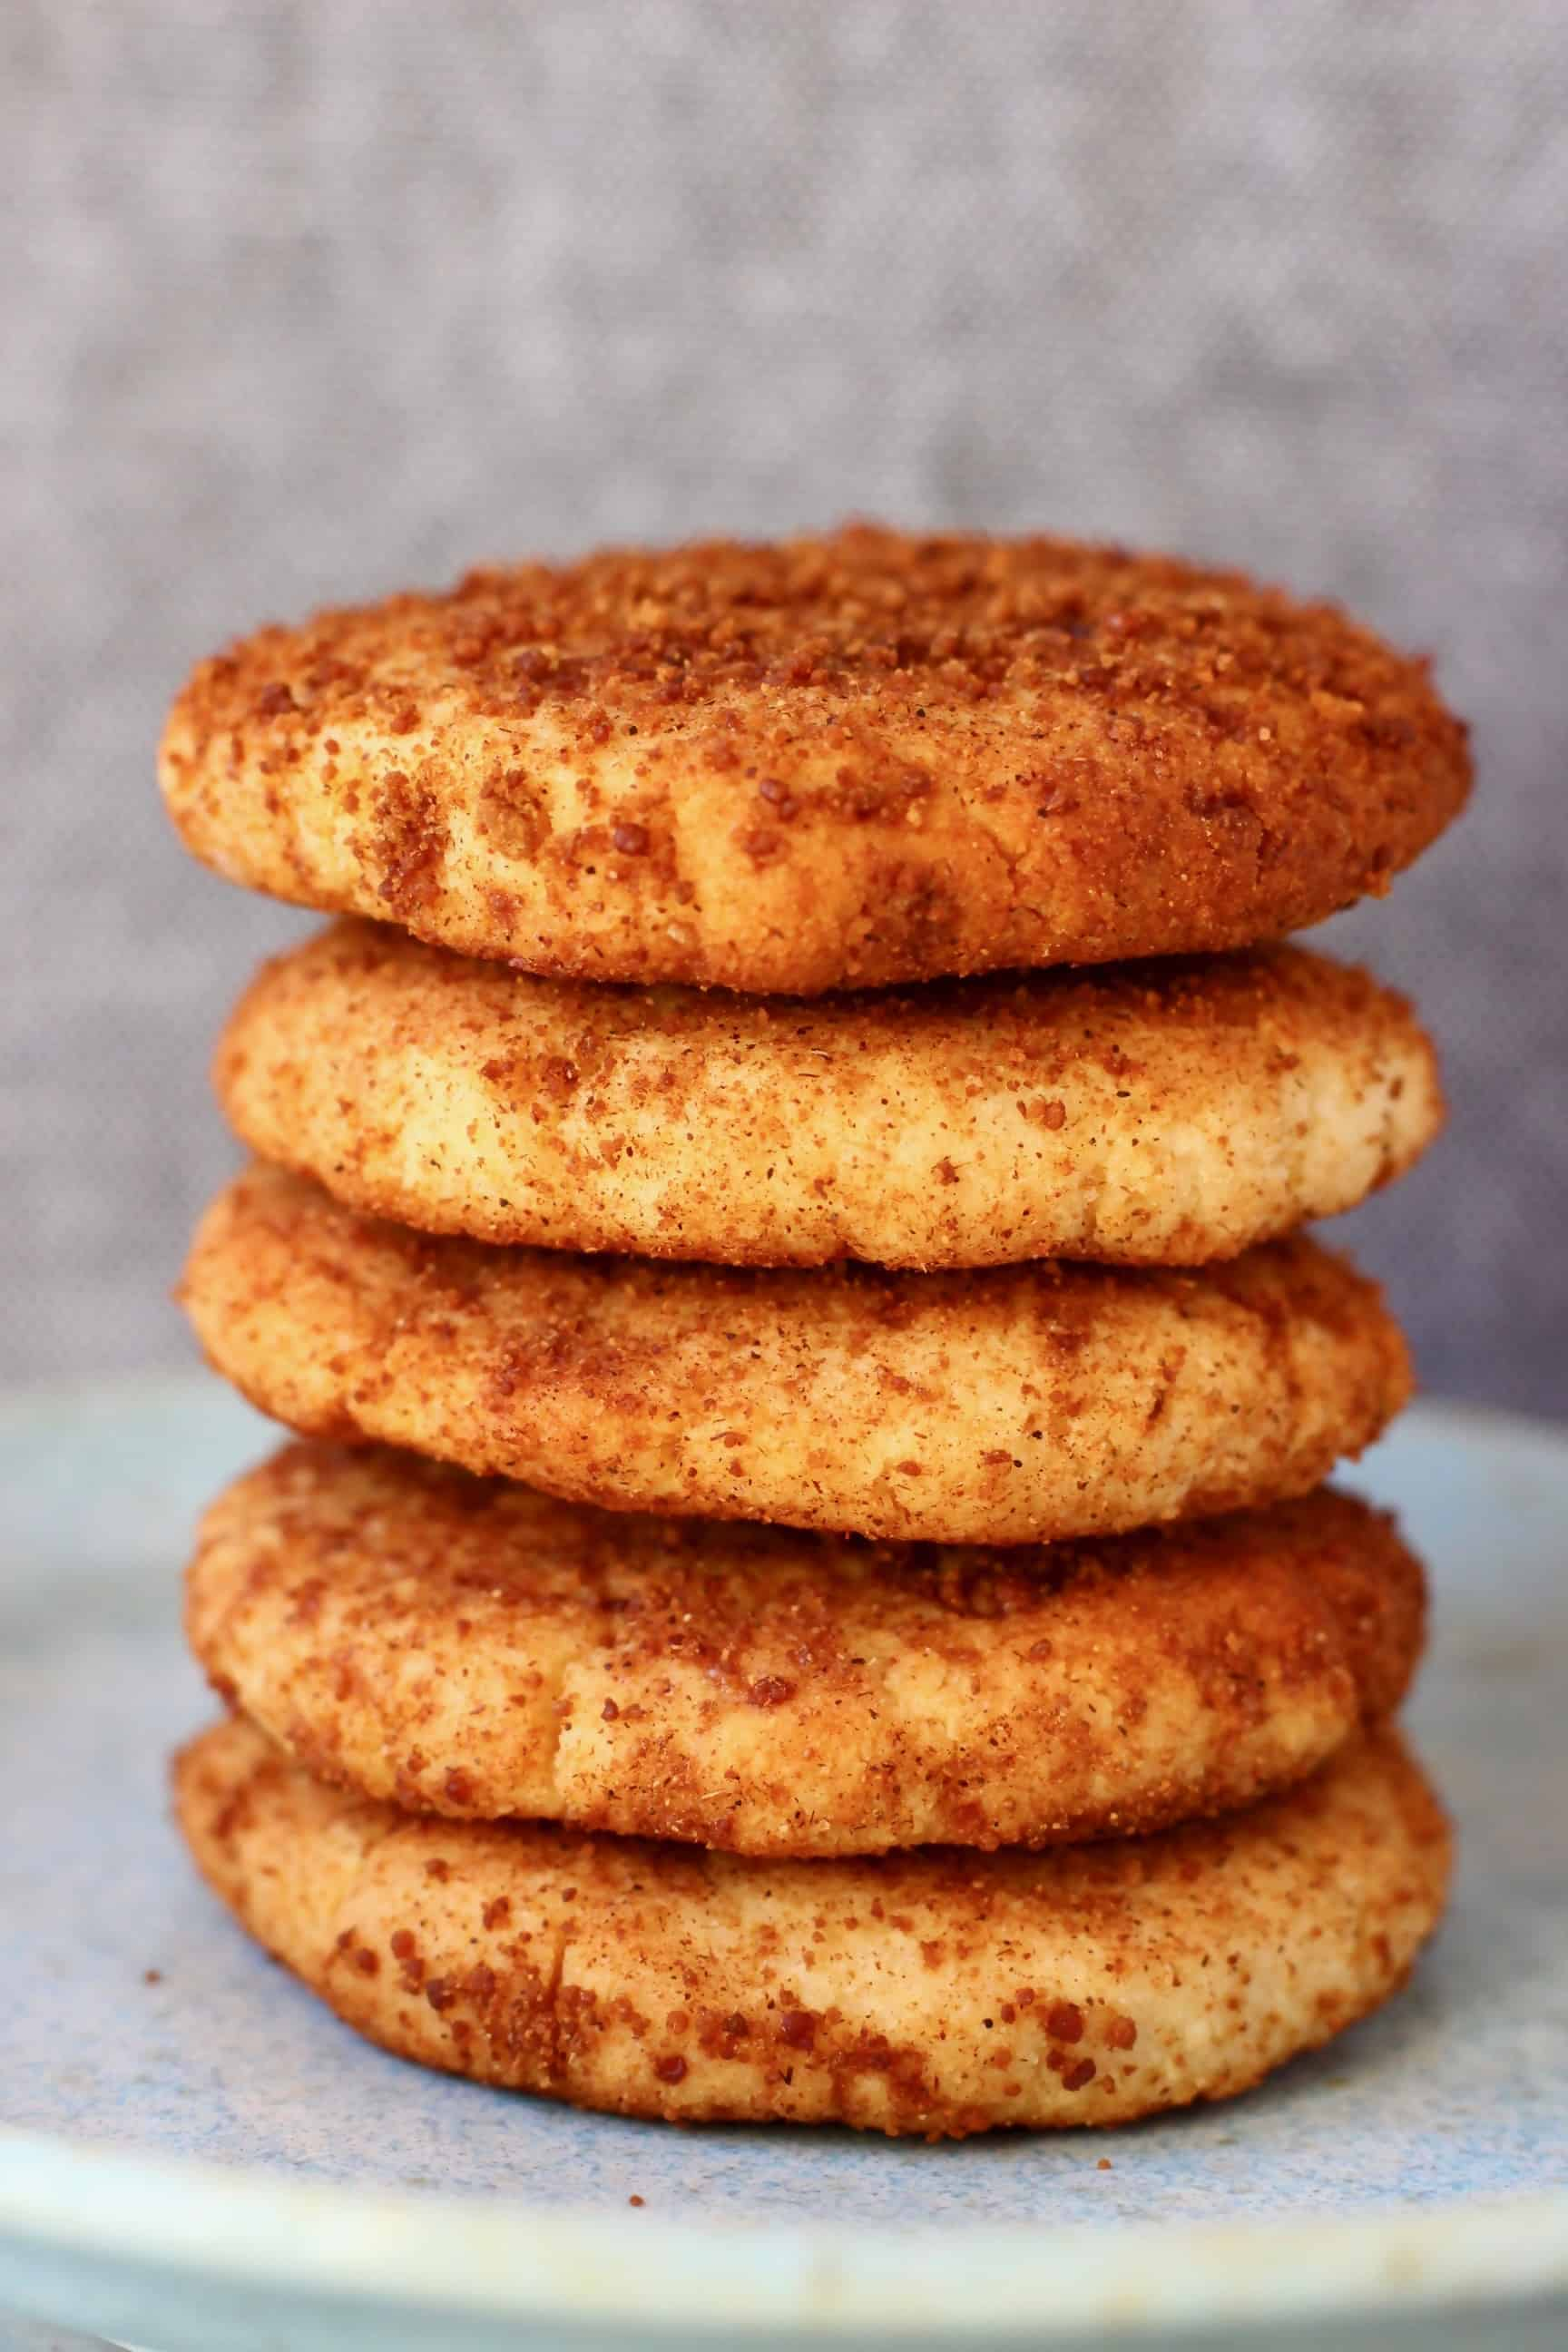 Five snickerdoodles coated in brown cinnamon sugar stacked on top of each other on a light blue plate